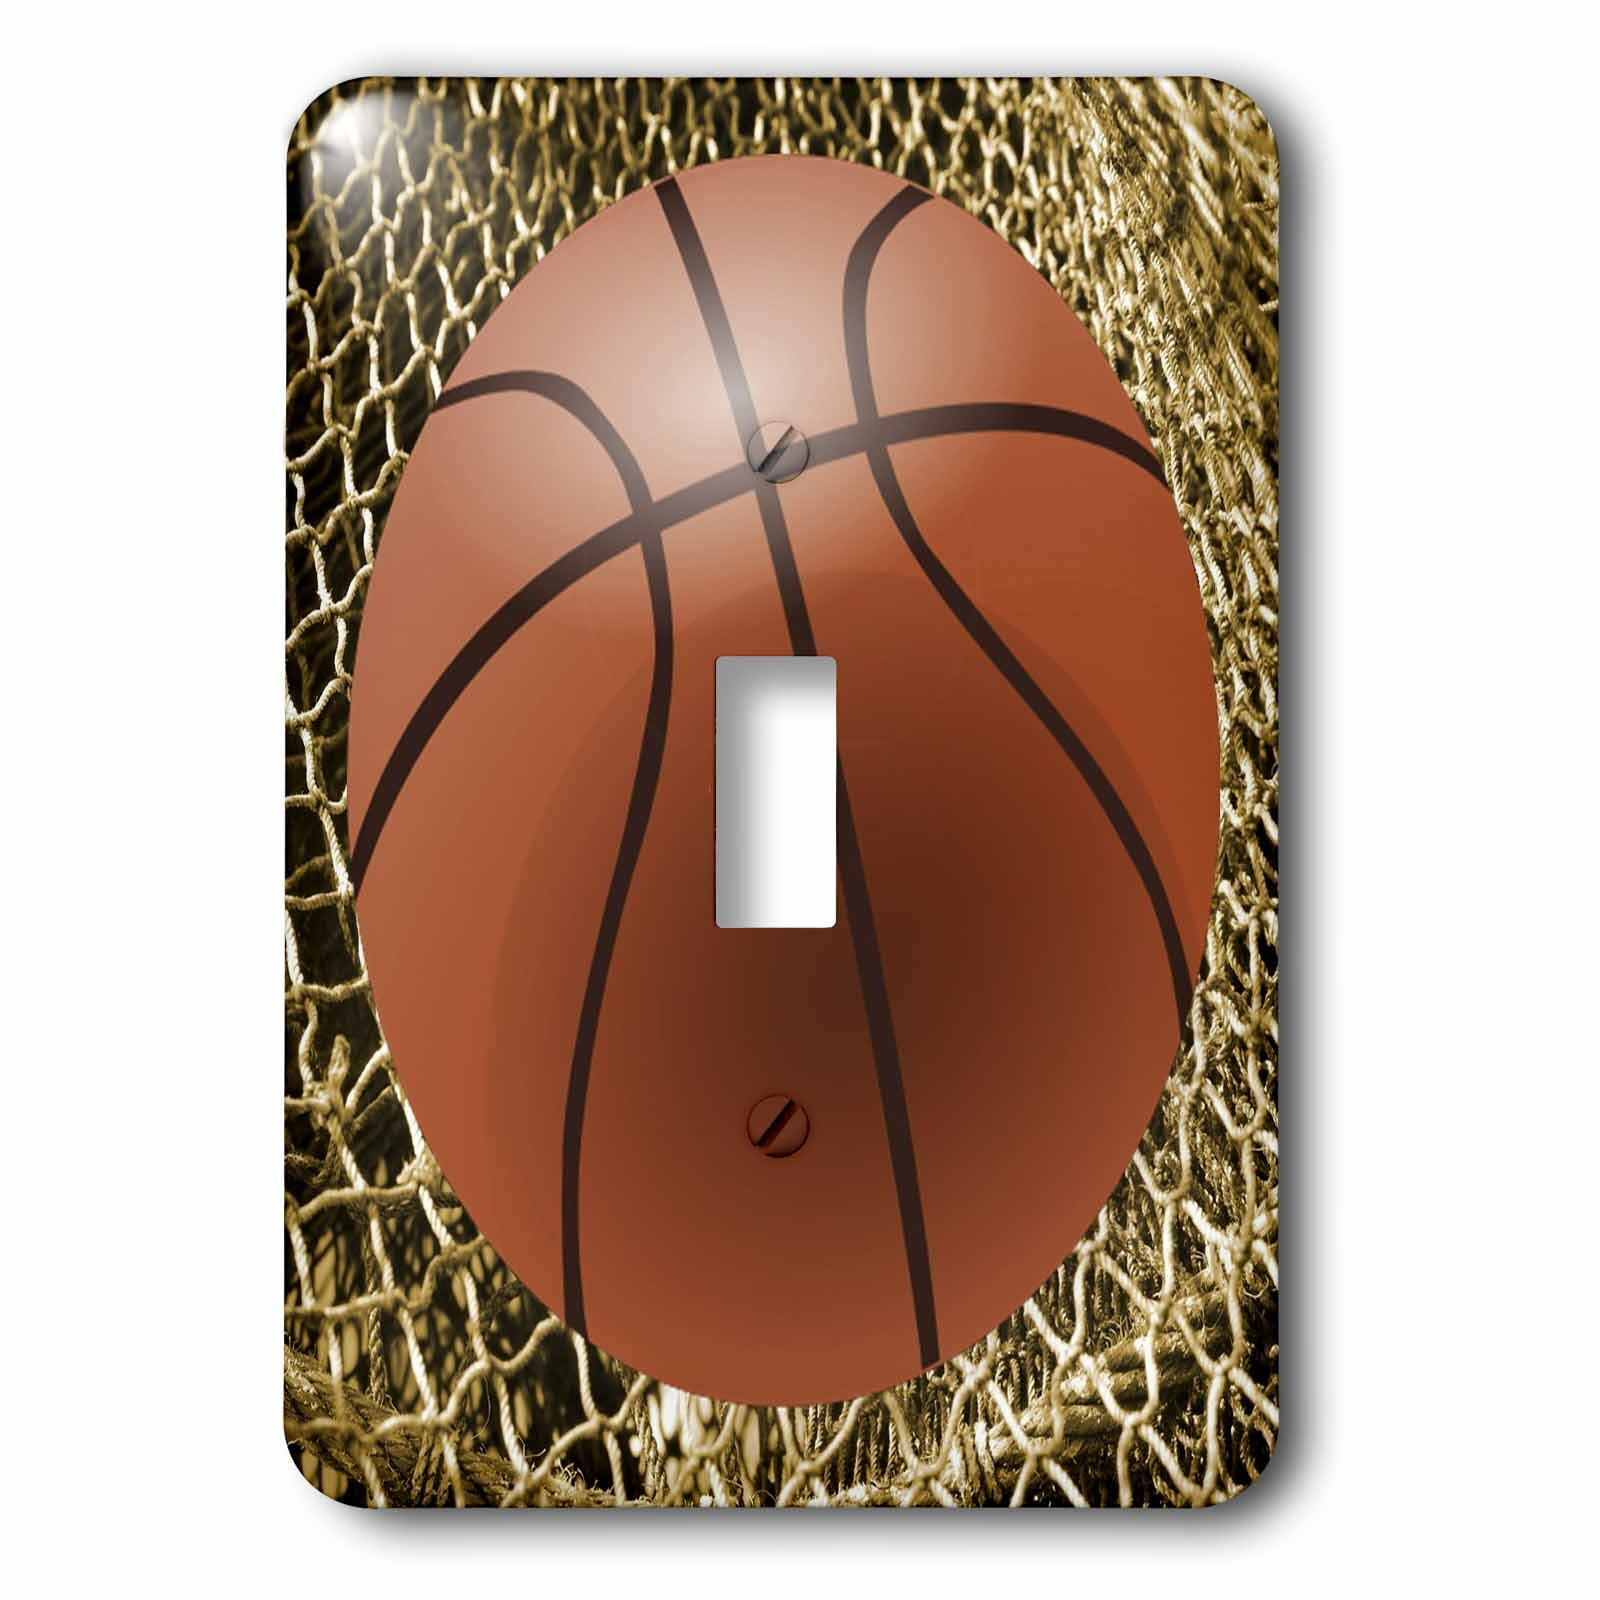 3drose Basketball With Net 1 Gang Toggle Light Switch Wall Plate Wayfair